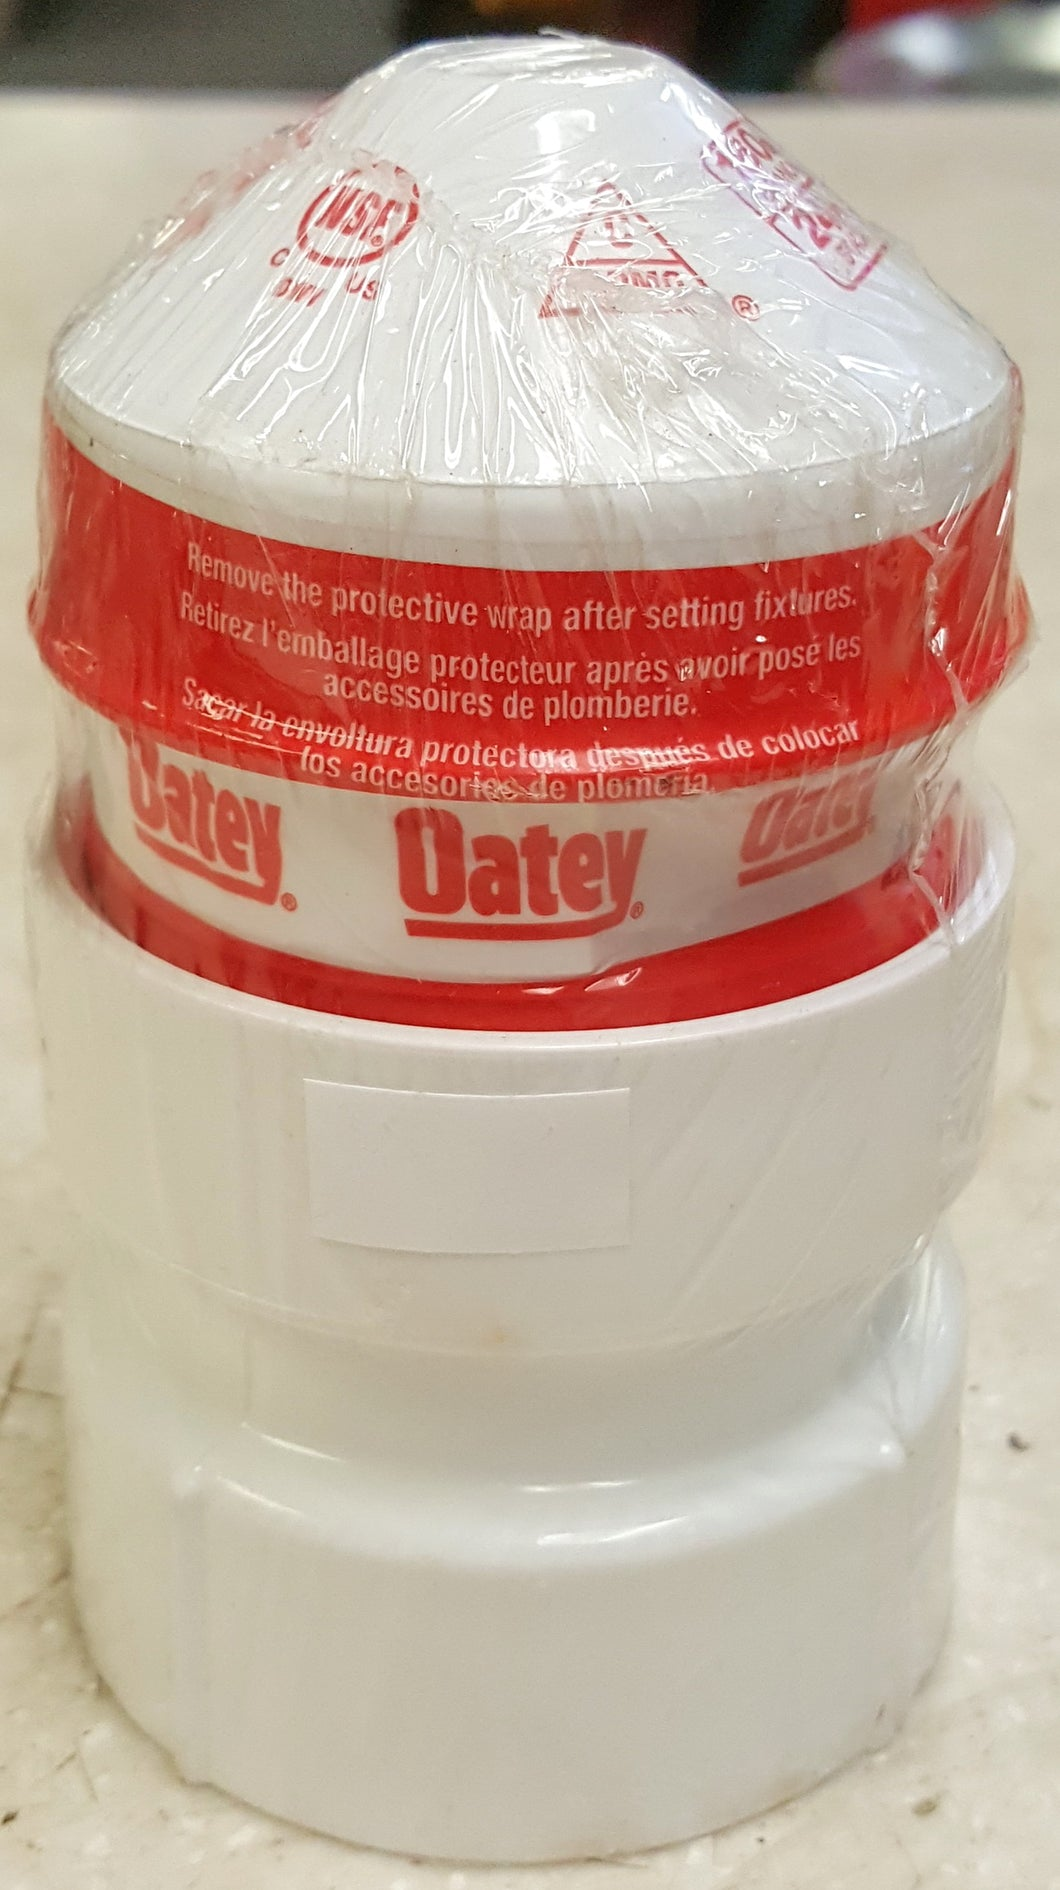 Oatey 39017 Sure-Vent Air Admittance Valve with 1-1/2-Inch by 2-Inch PVC Adapter